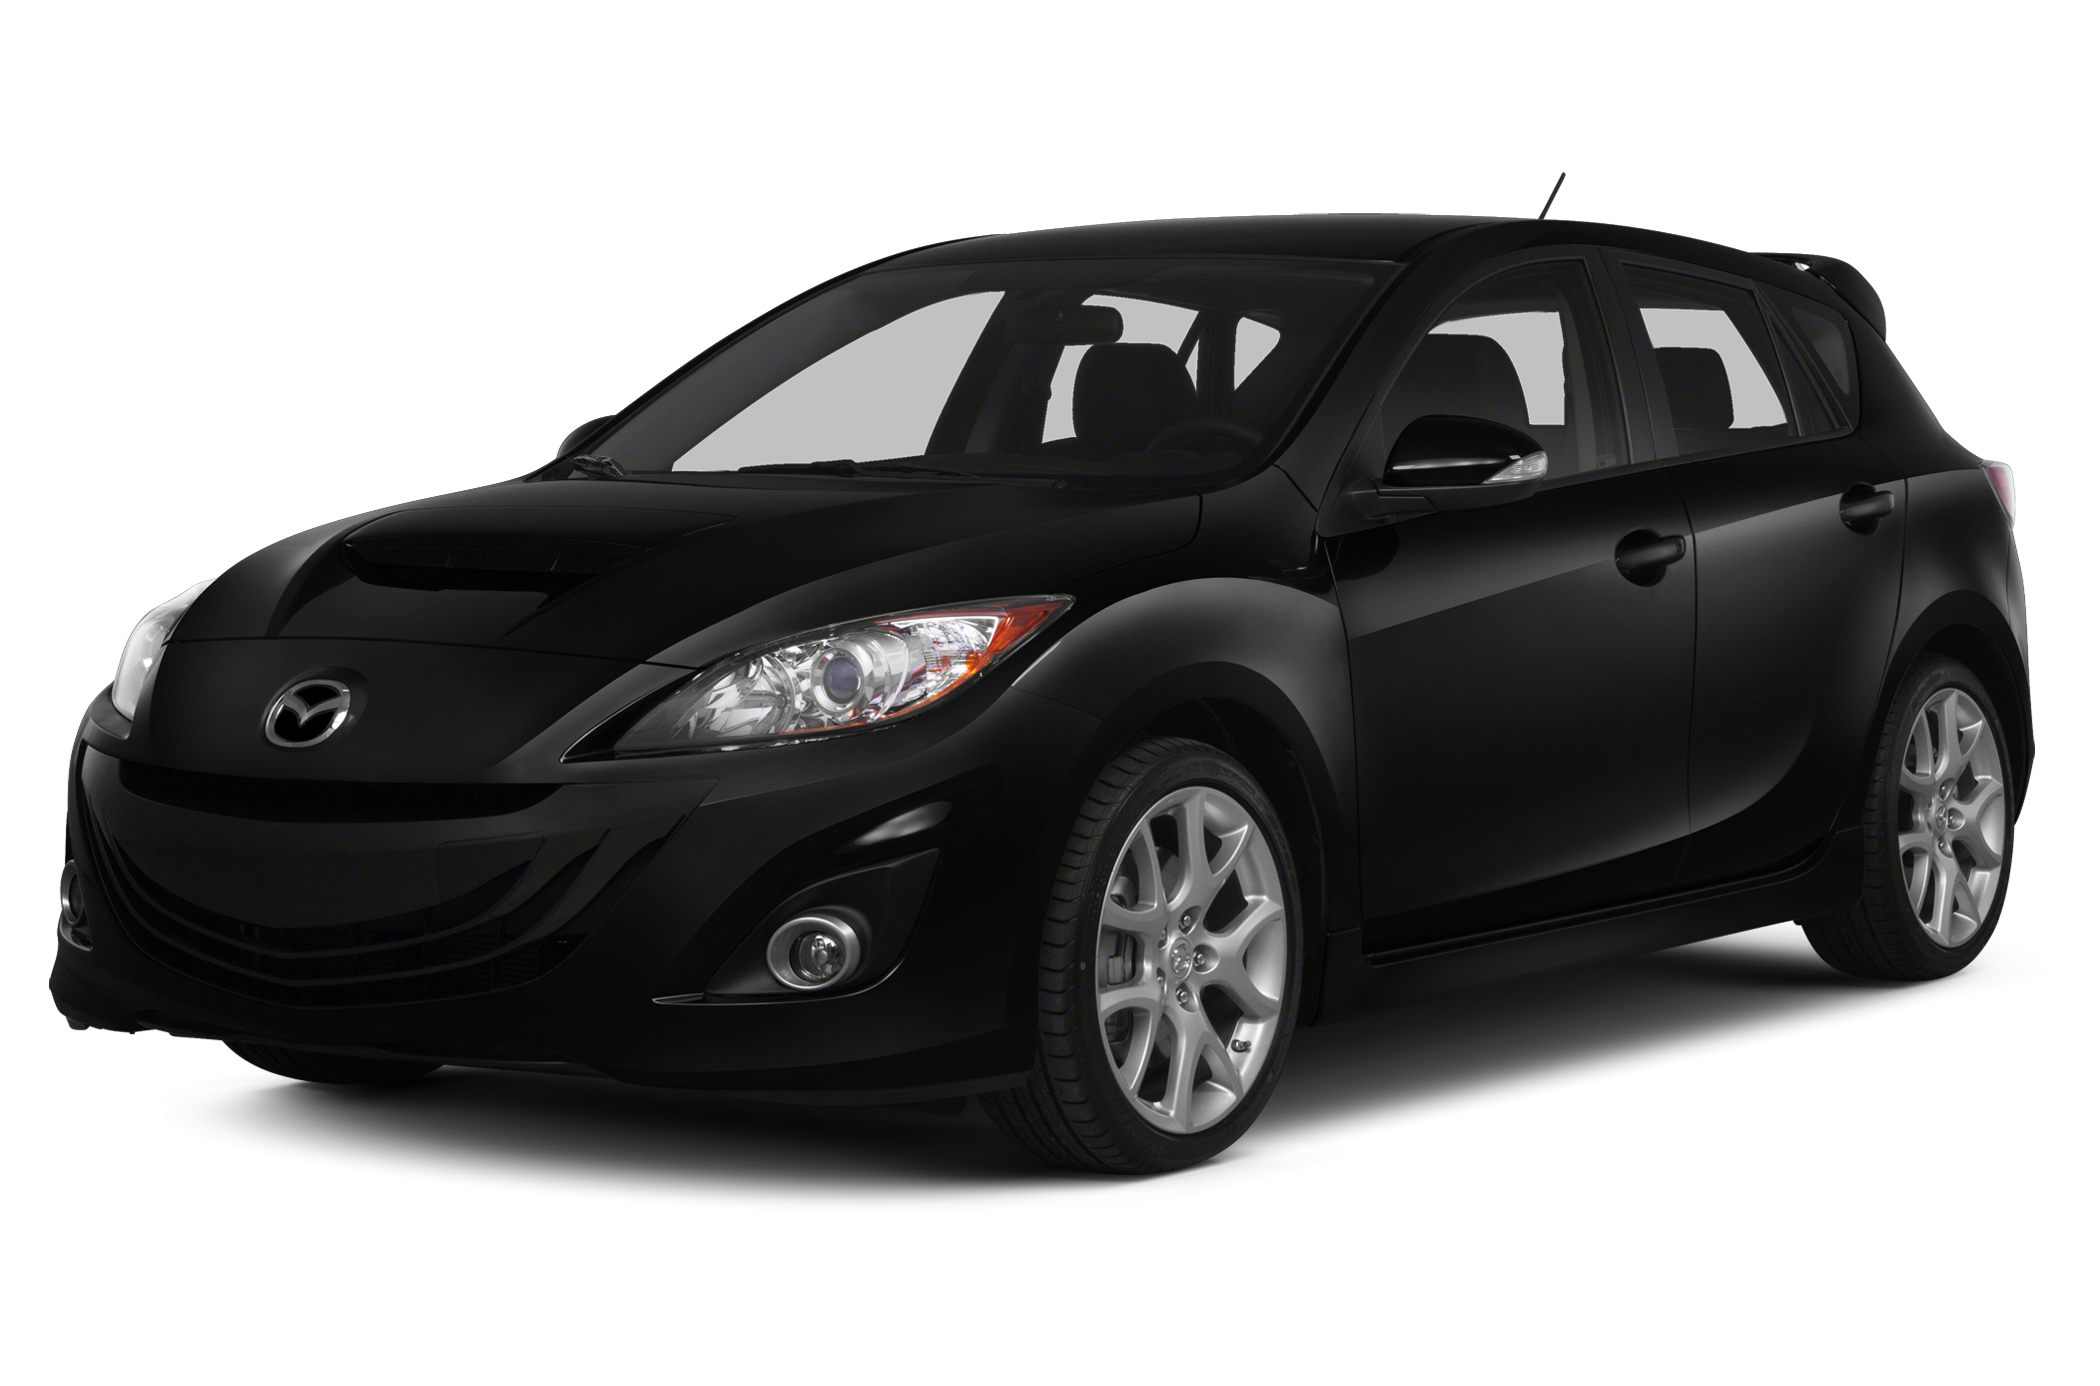 mazda won 39 t build new mazdaspeed3 or 6 based on current models autoblog. Black Bedroom Furniture Sets. Home Design Ideas